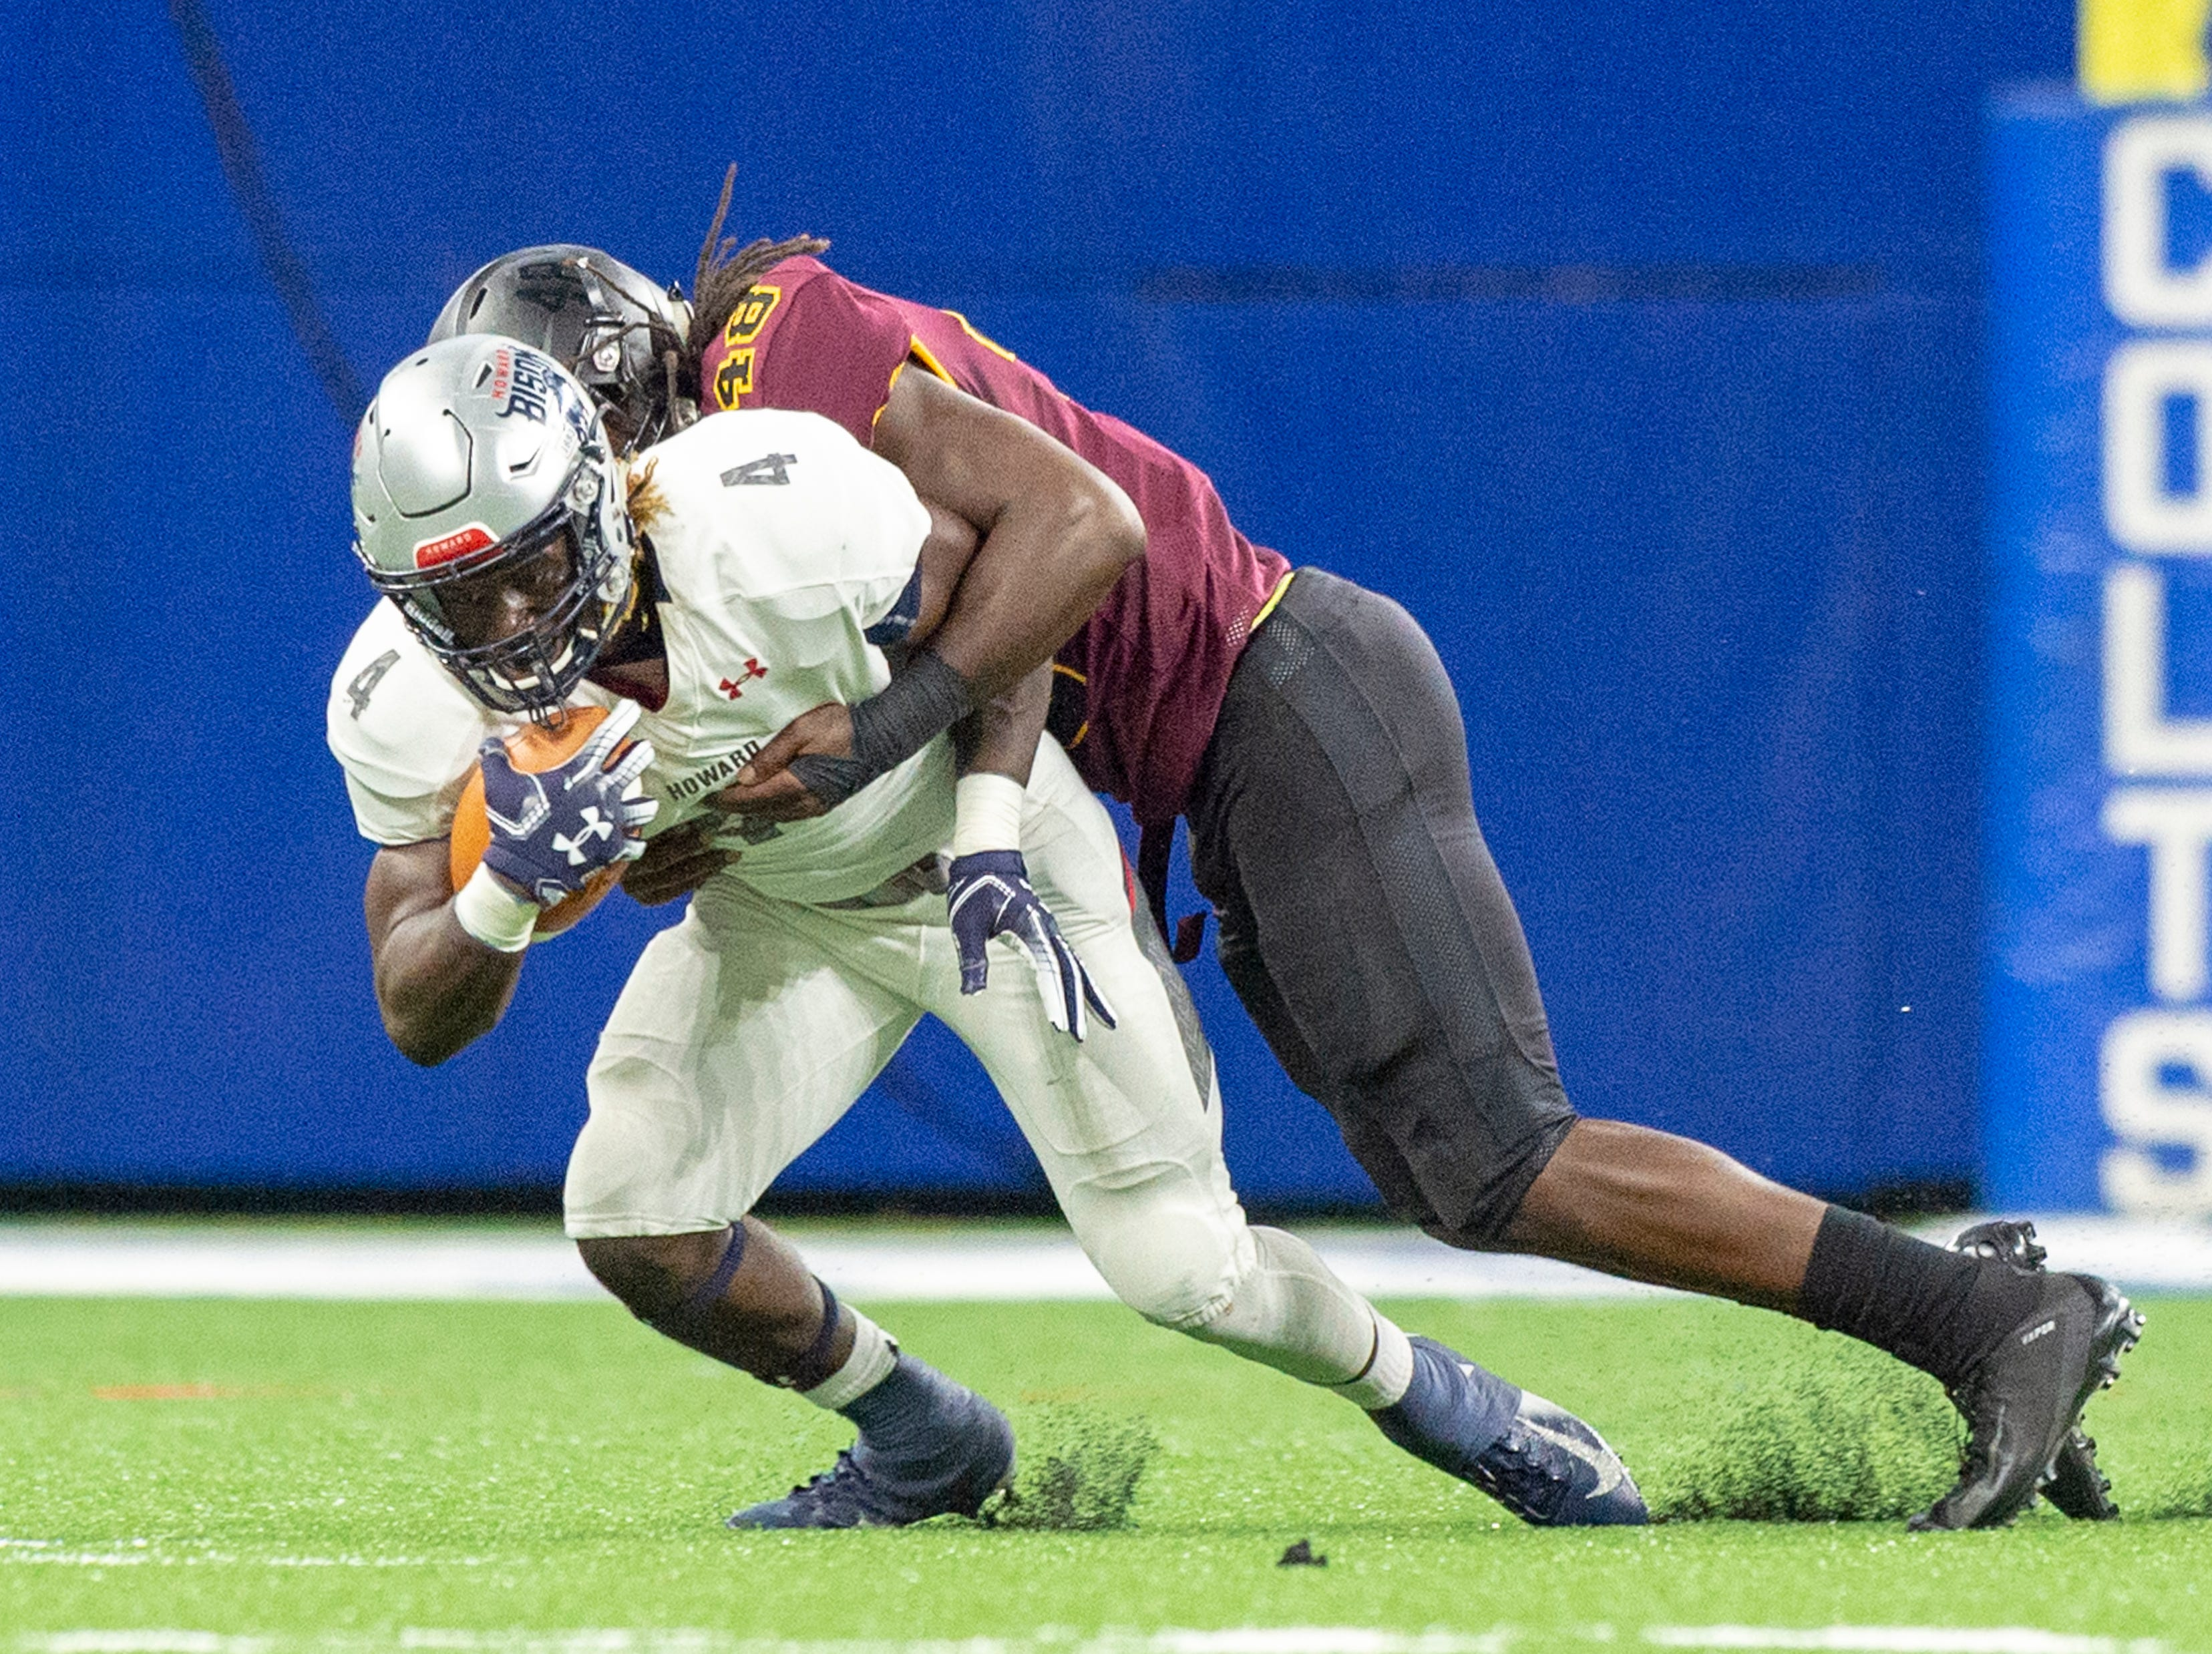 Howard Bison running back Iggy Reynoso (4) is hit by Bethune Cookman Wildcats defensive end Marques Ford (48) during the first half of action. Howard Bison took on Bethune Cookman Wildcats in the Circle City Classic game, Saturday, Sept. 22, 2018, at Lucas Oil Stadium.